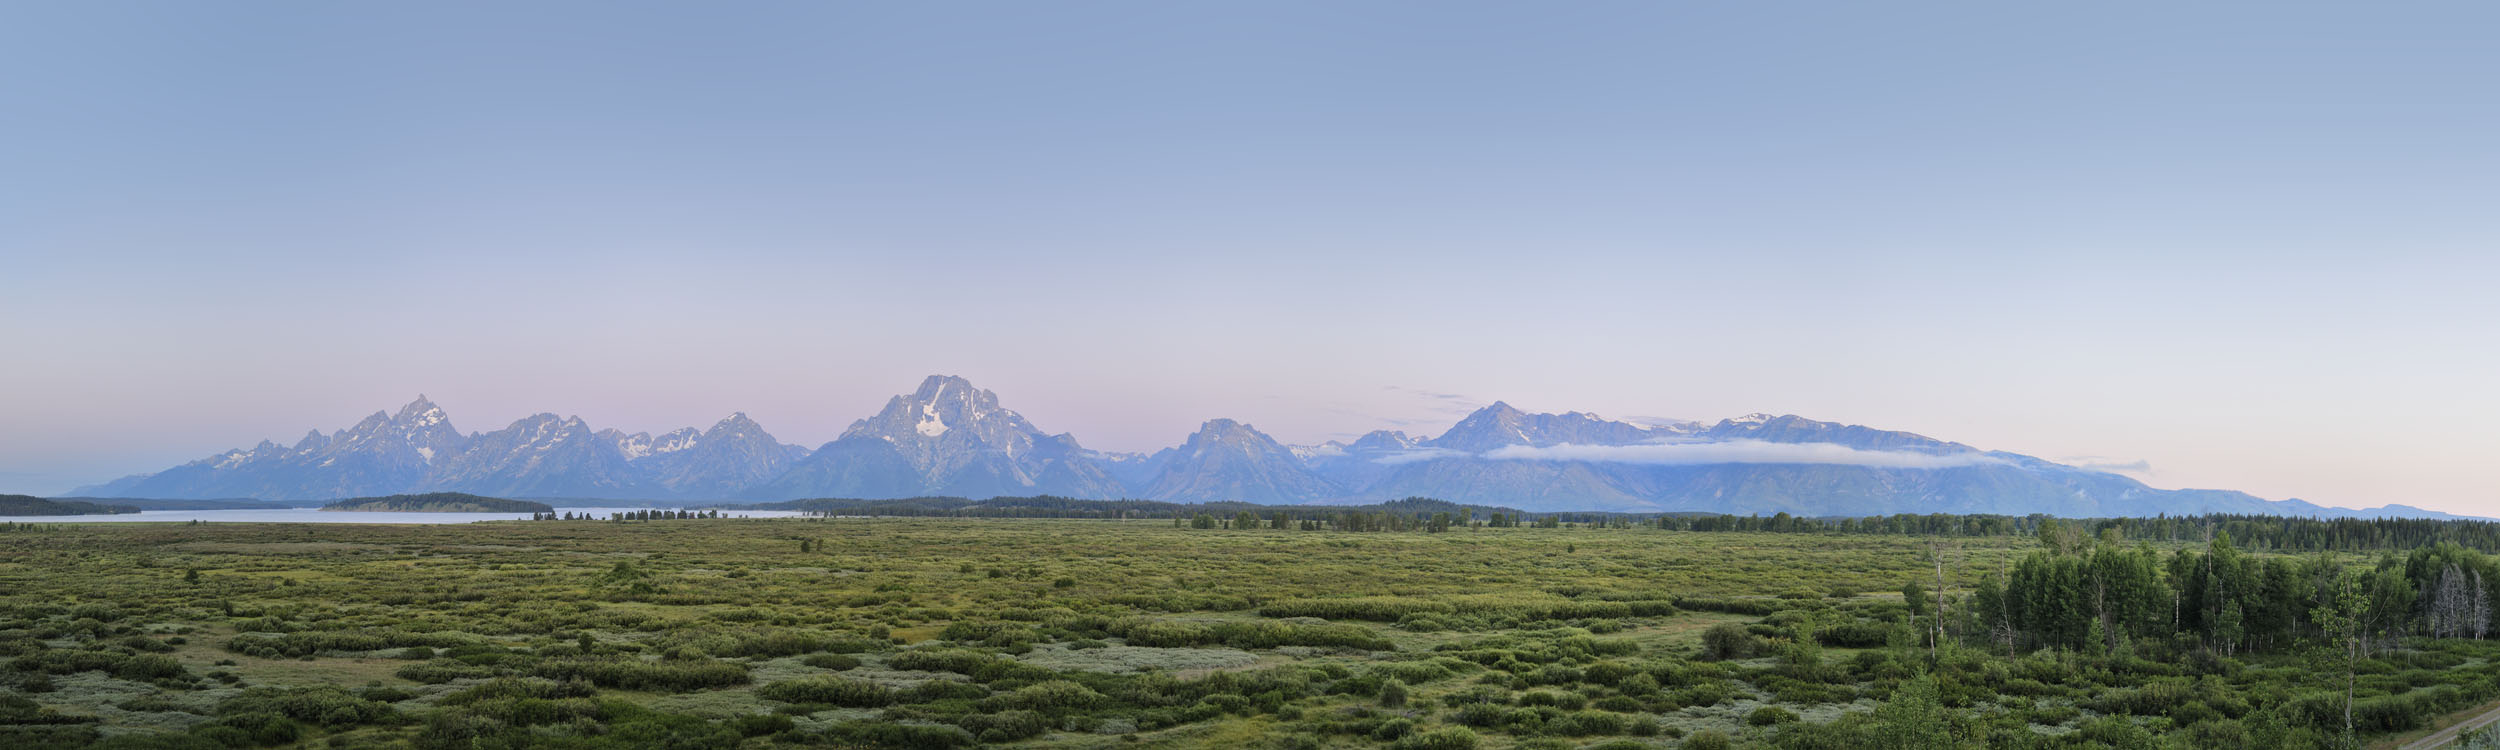 The View from Teton Lodge